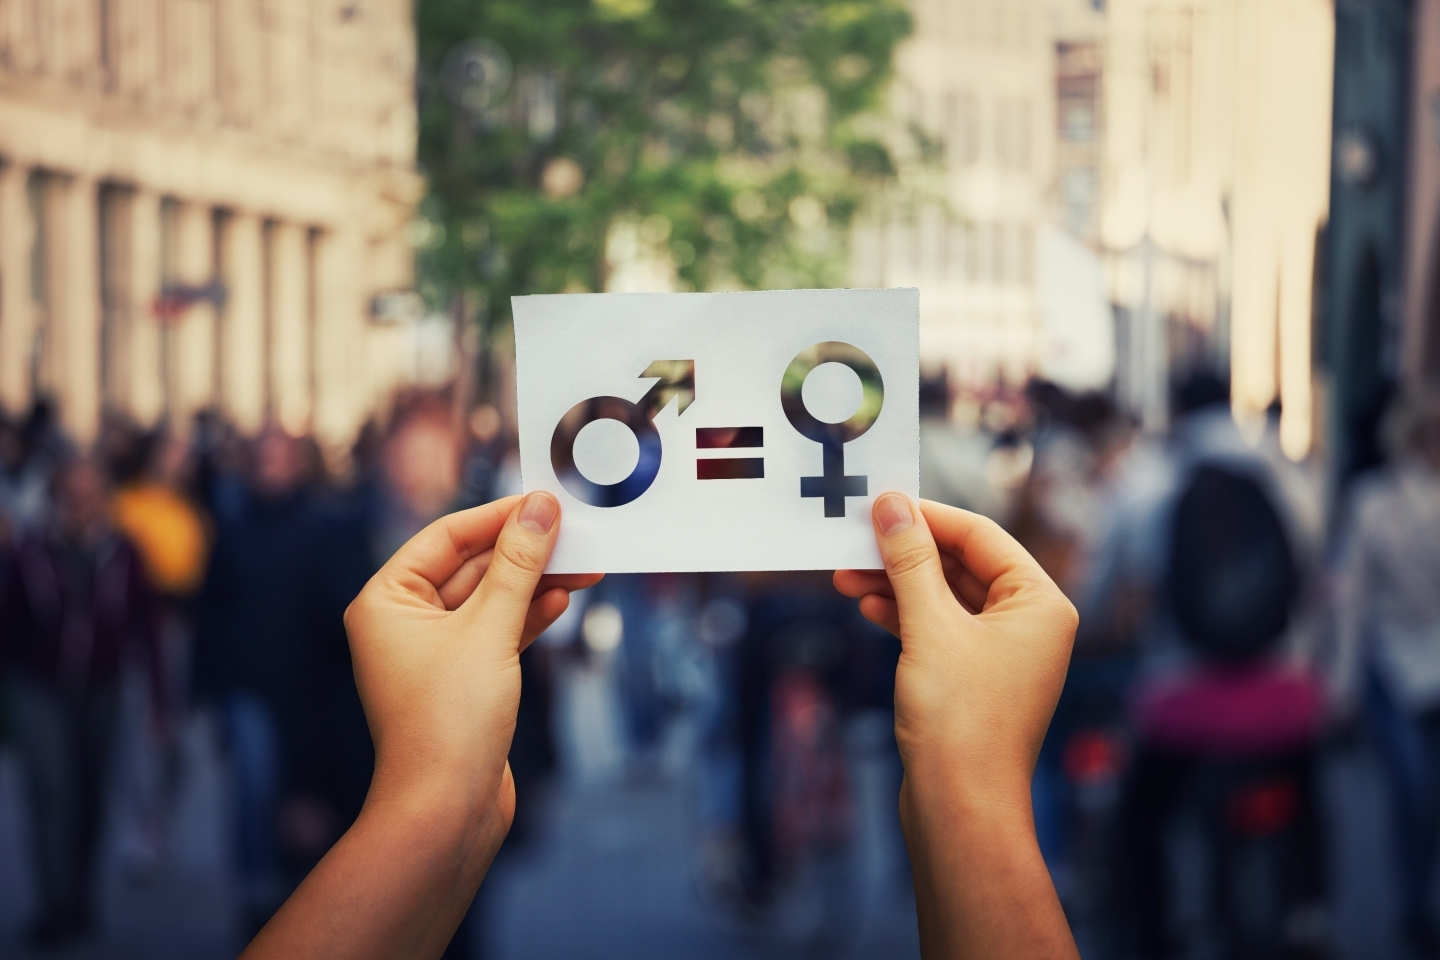 Display of gender equality concept through signage (Shutterstock)